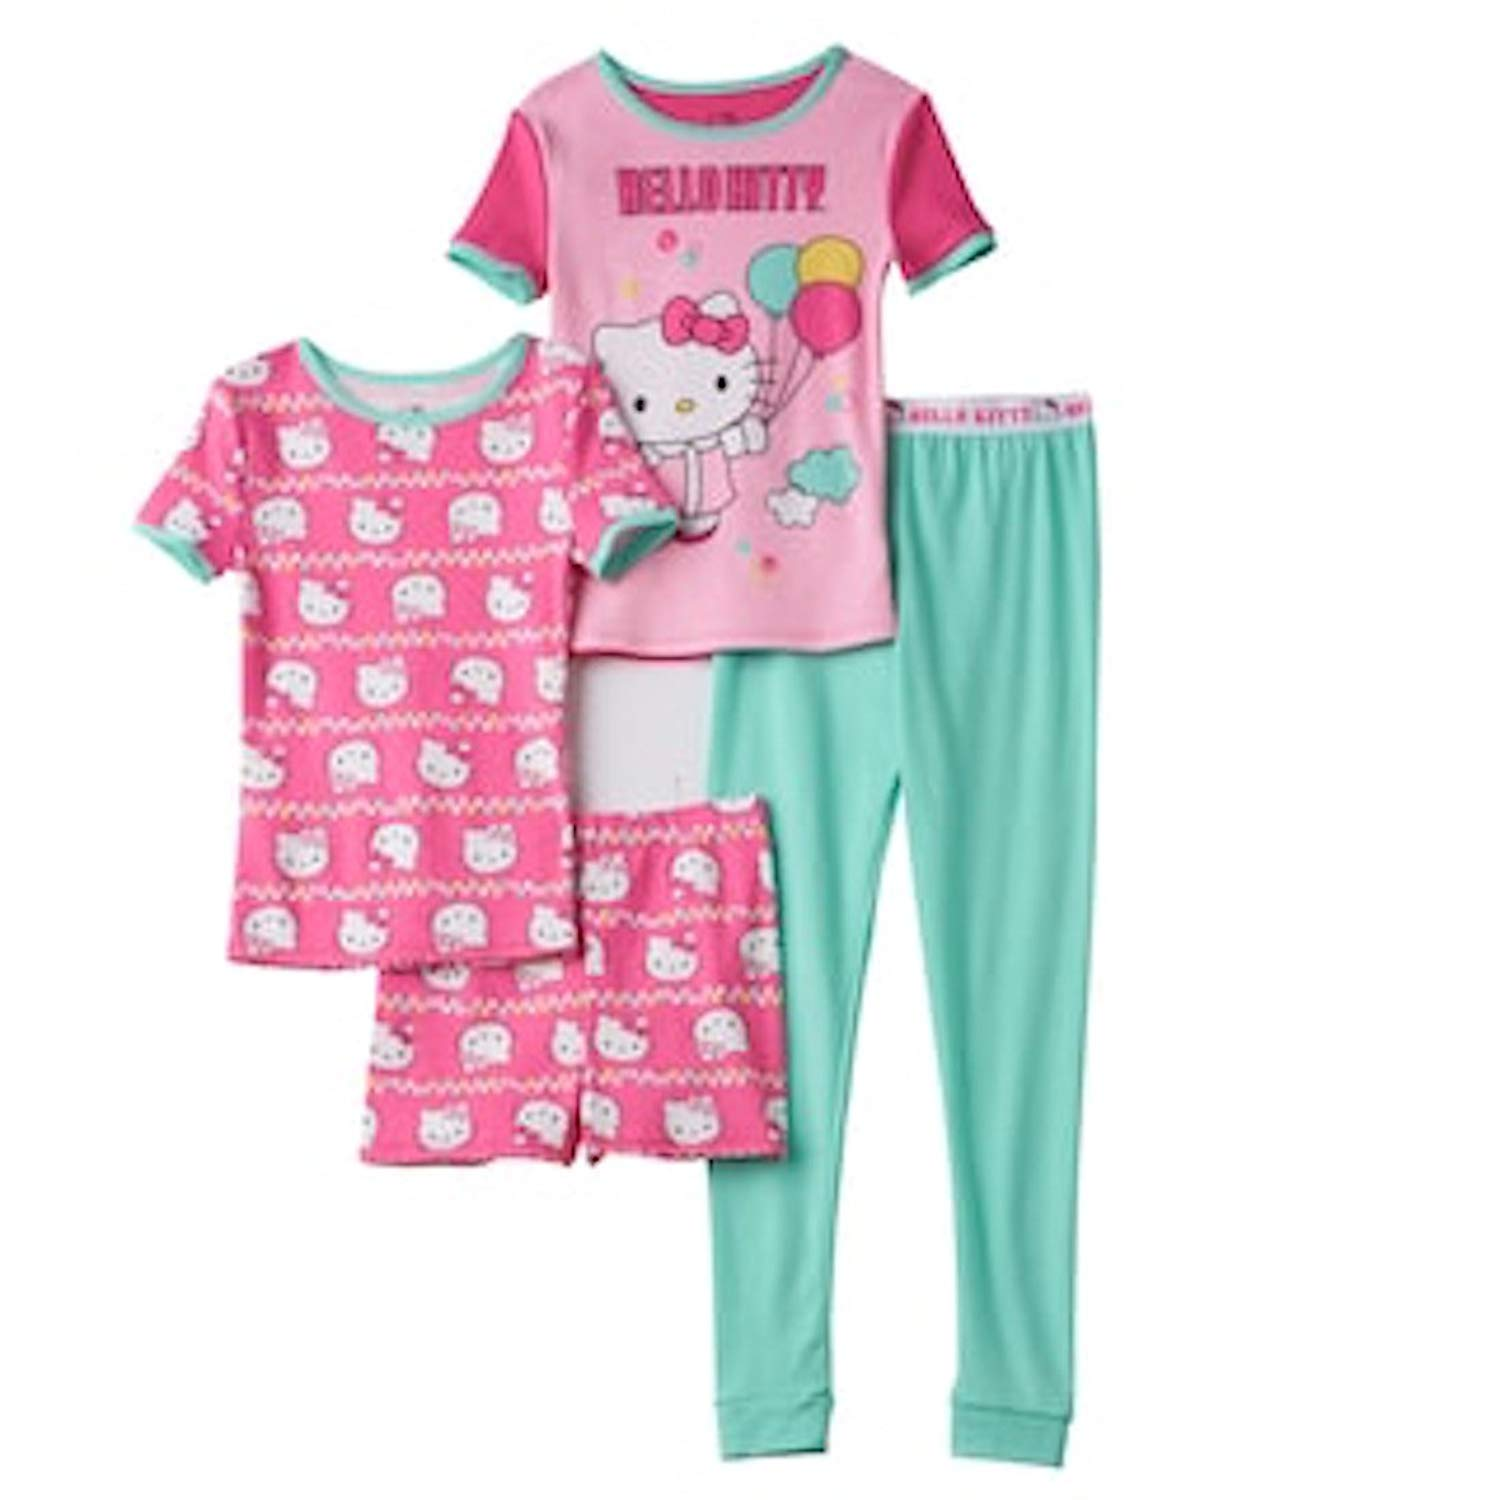 af5a19c17 Get Quotations · Hello Kitty Little Girl Short Sleeve Pajama 4 Piece Set  Size 4 Pink Multi